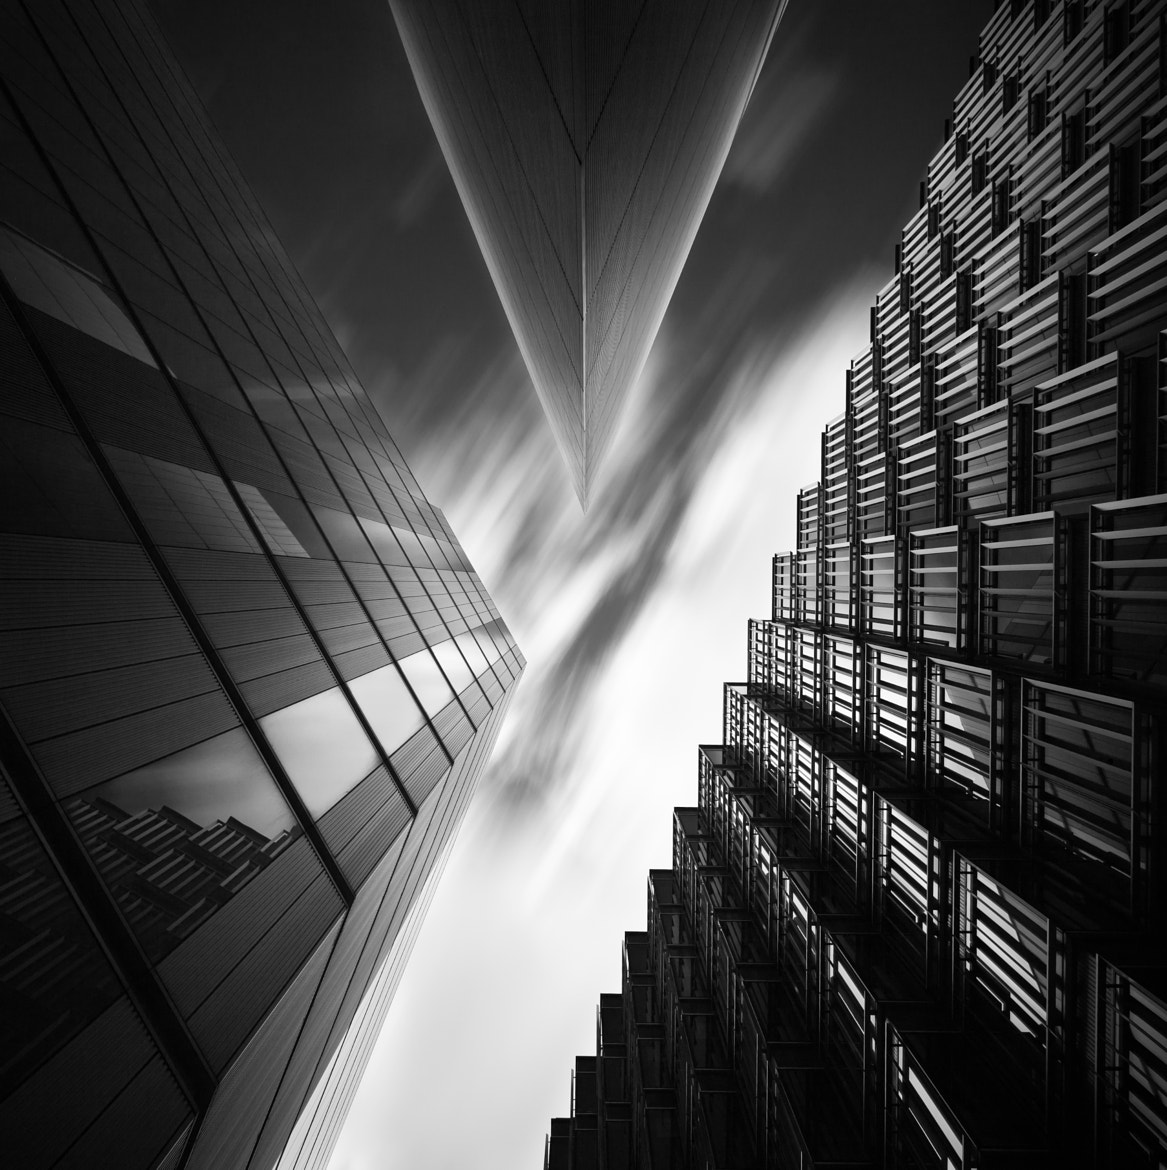 Photograph y by Philipp Richert on 500px